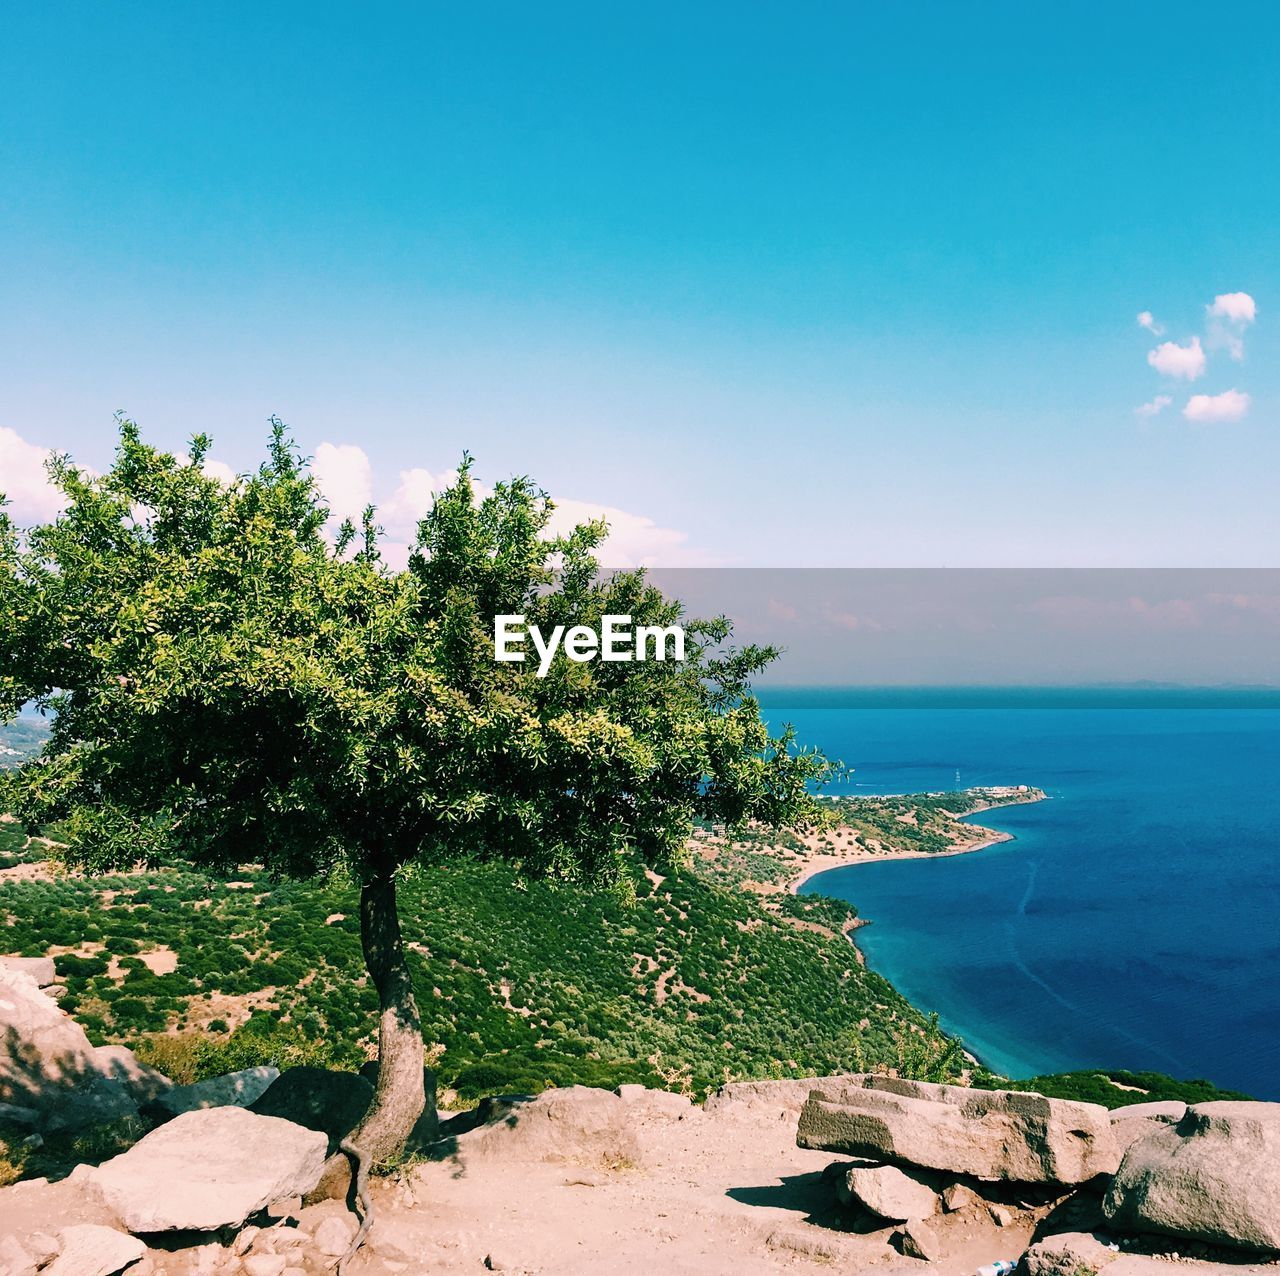 sky, plant, tree, sea, water, beauty in nature, scenics - nature, tranquil scene, tranquility, land, nature, beach, growth, blue, day, no people, horizon, green color, horizon over water, outdoors